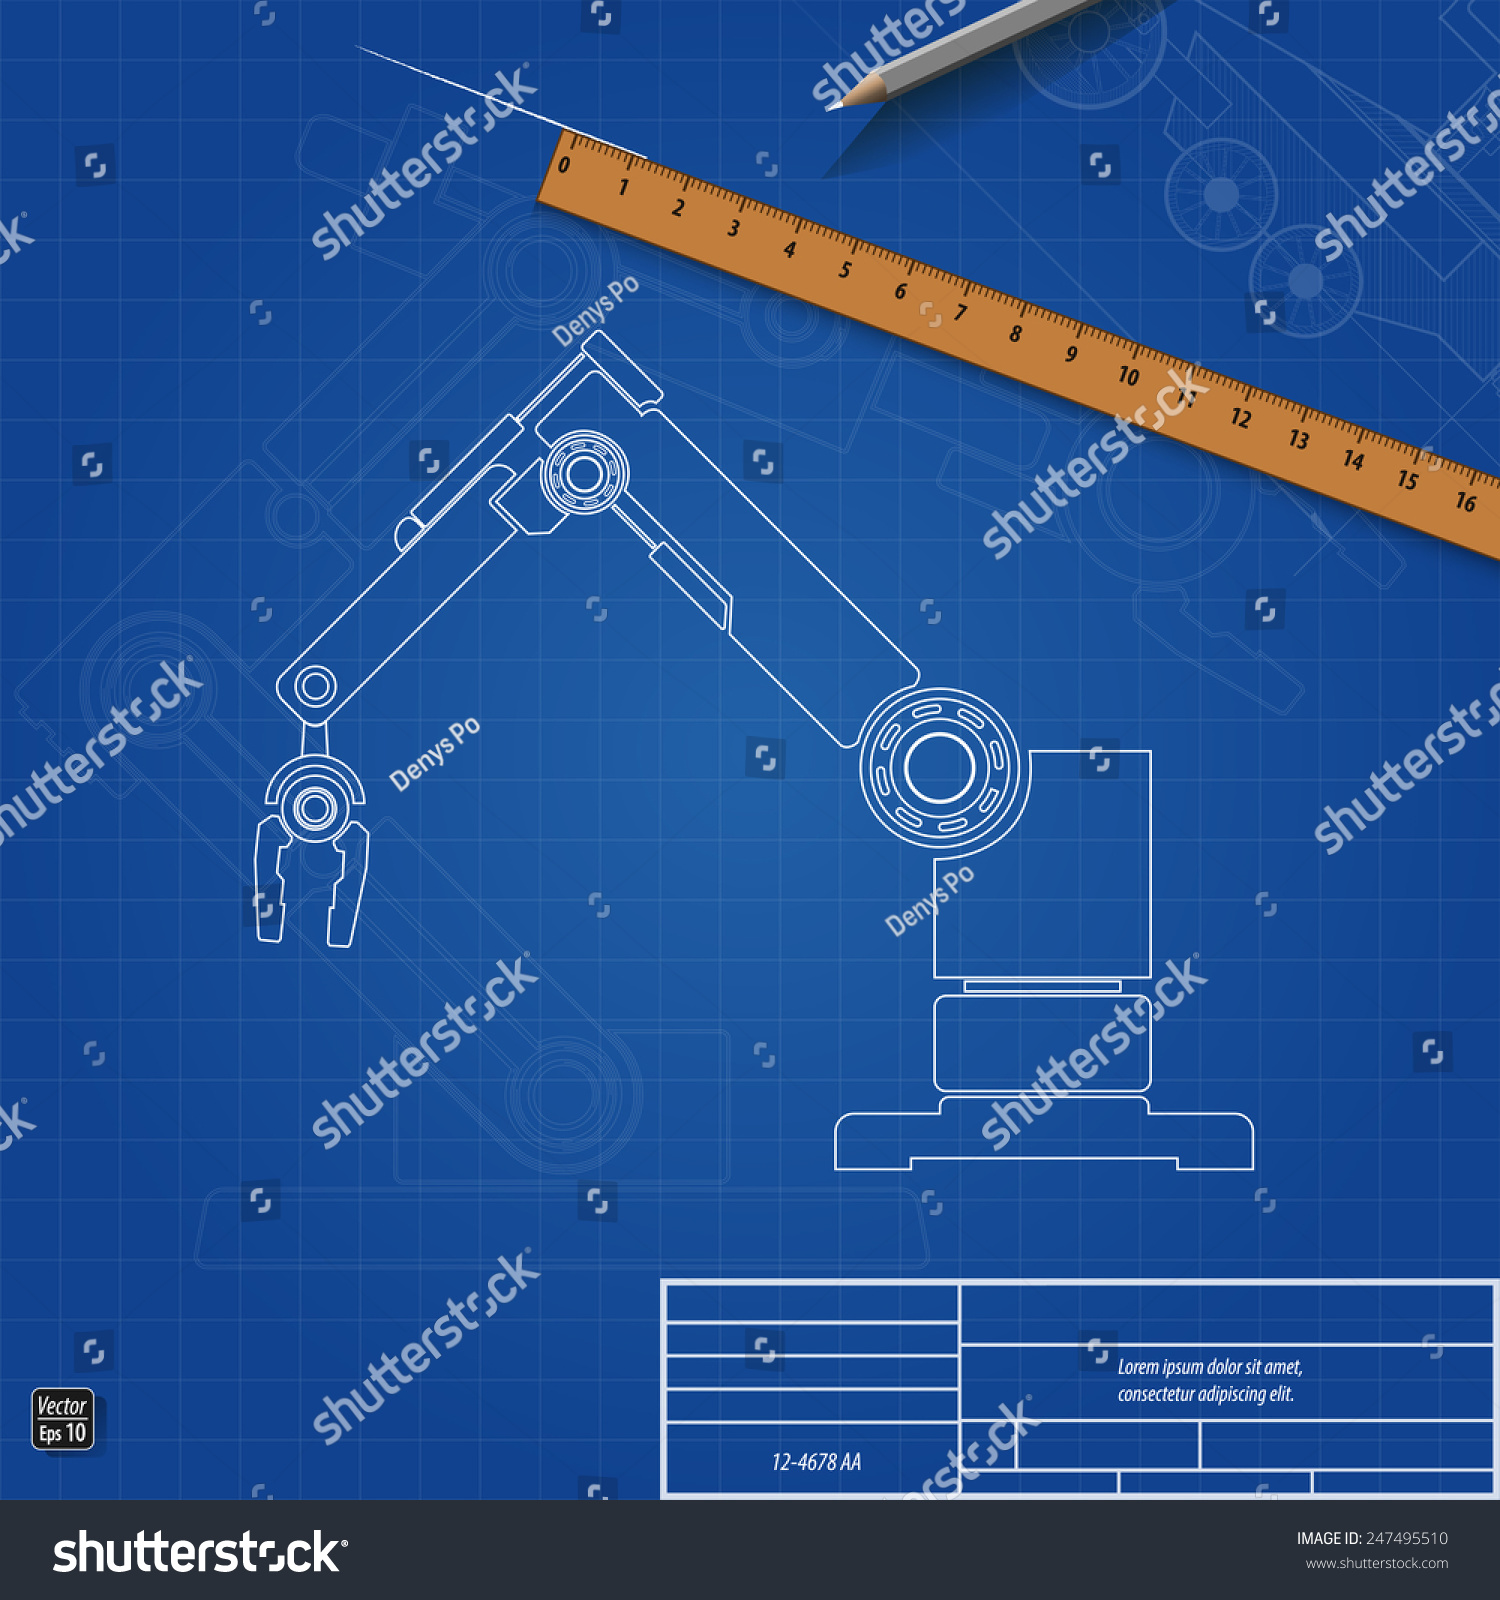 Blueprint robot arm vector illustration eps stock vector hd royalty blueprint robot arm vector illustration eps 10 malvernweather Images